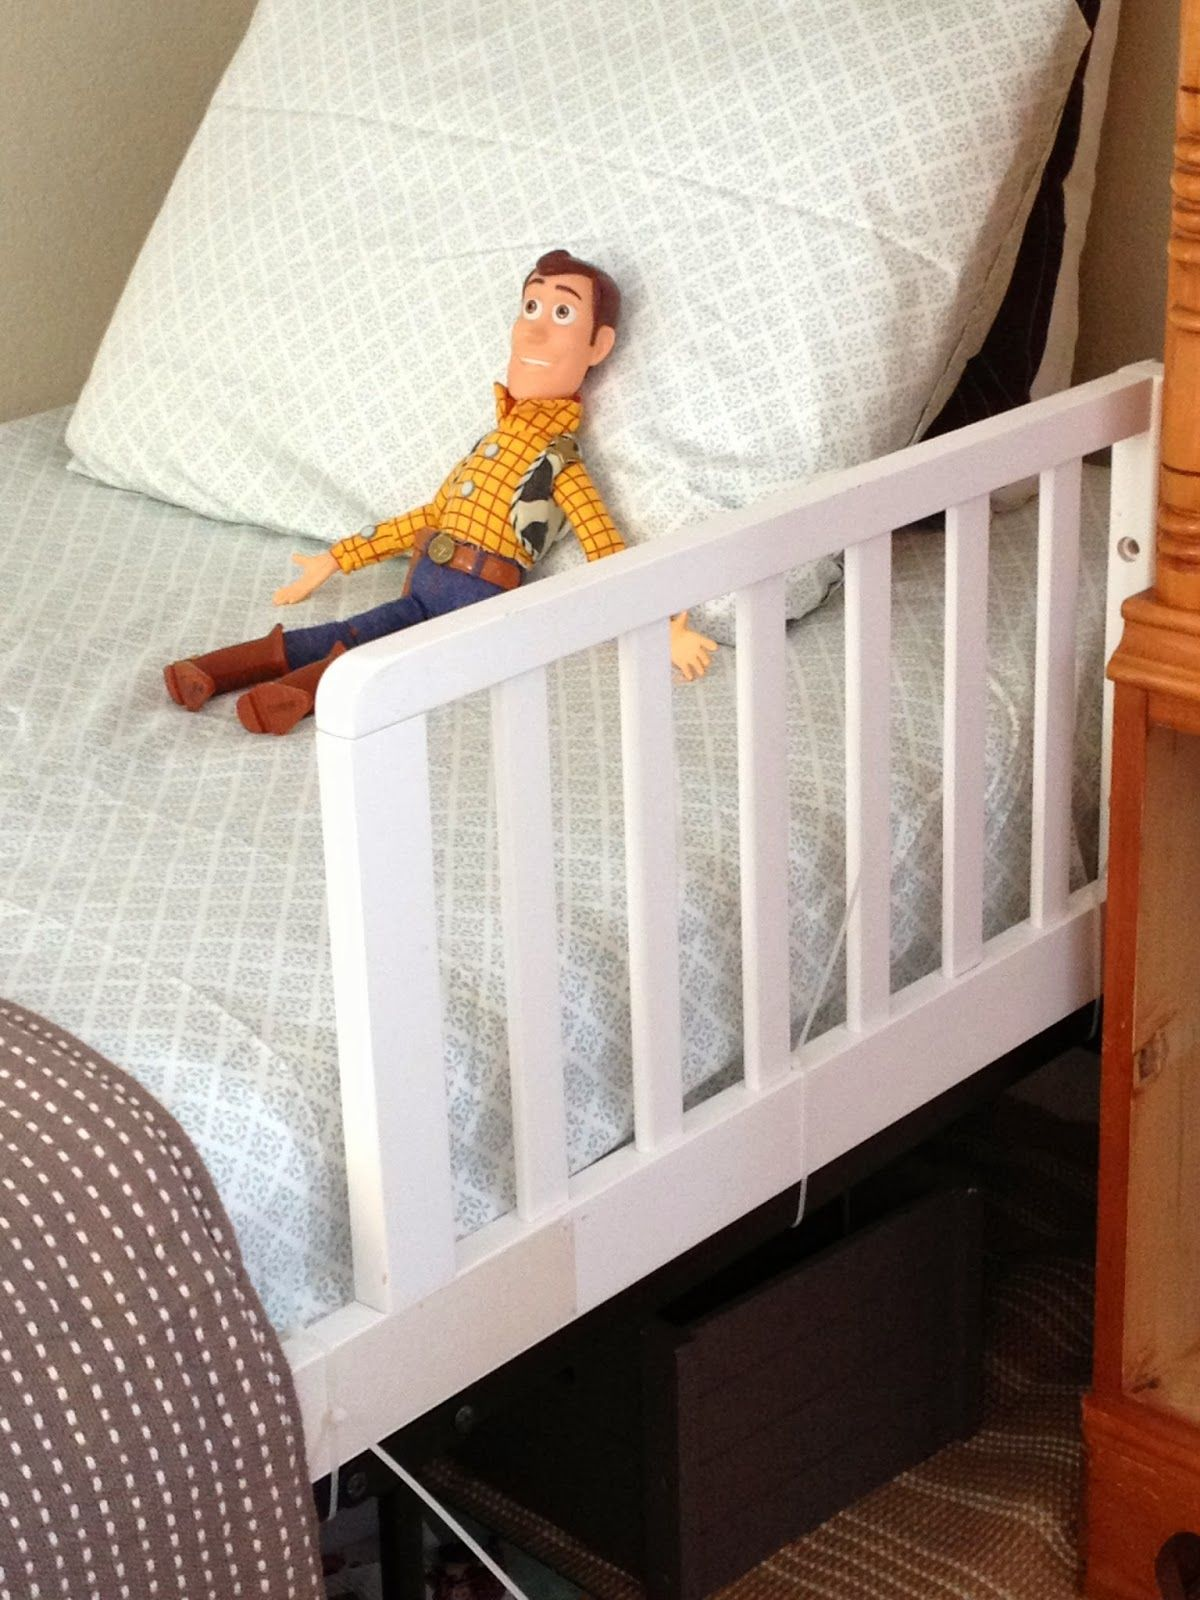 Boys Bedroom Bed frame for life Diy toddler bed, Diy